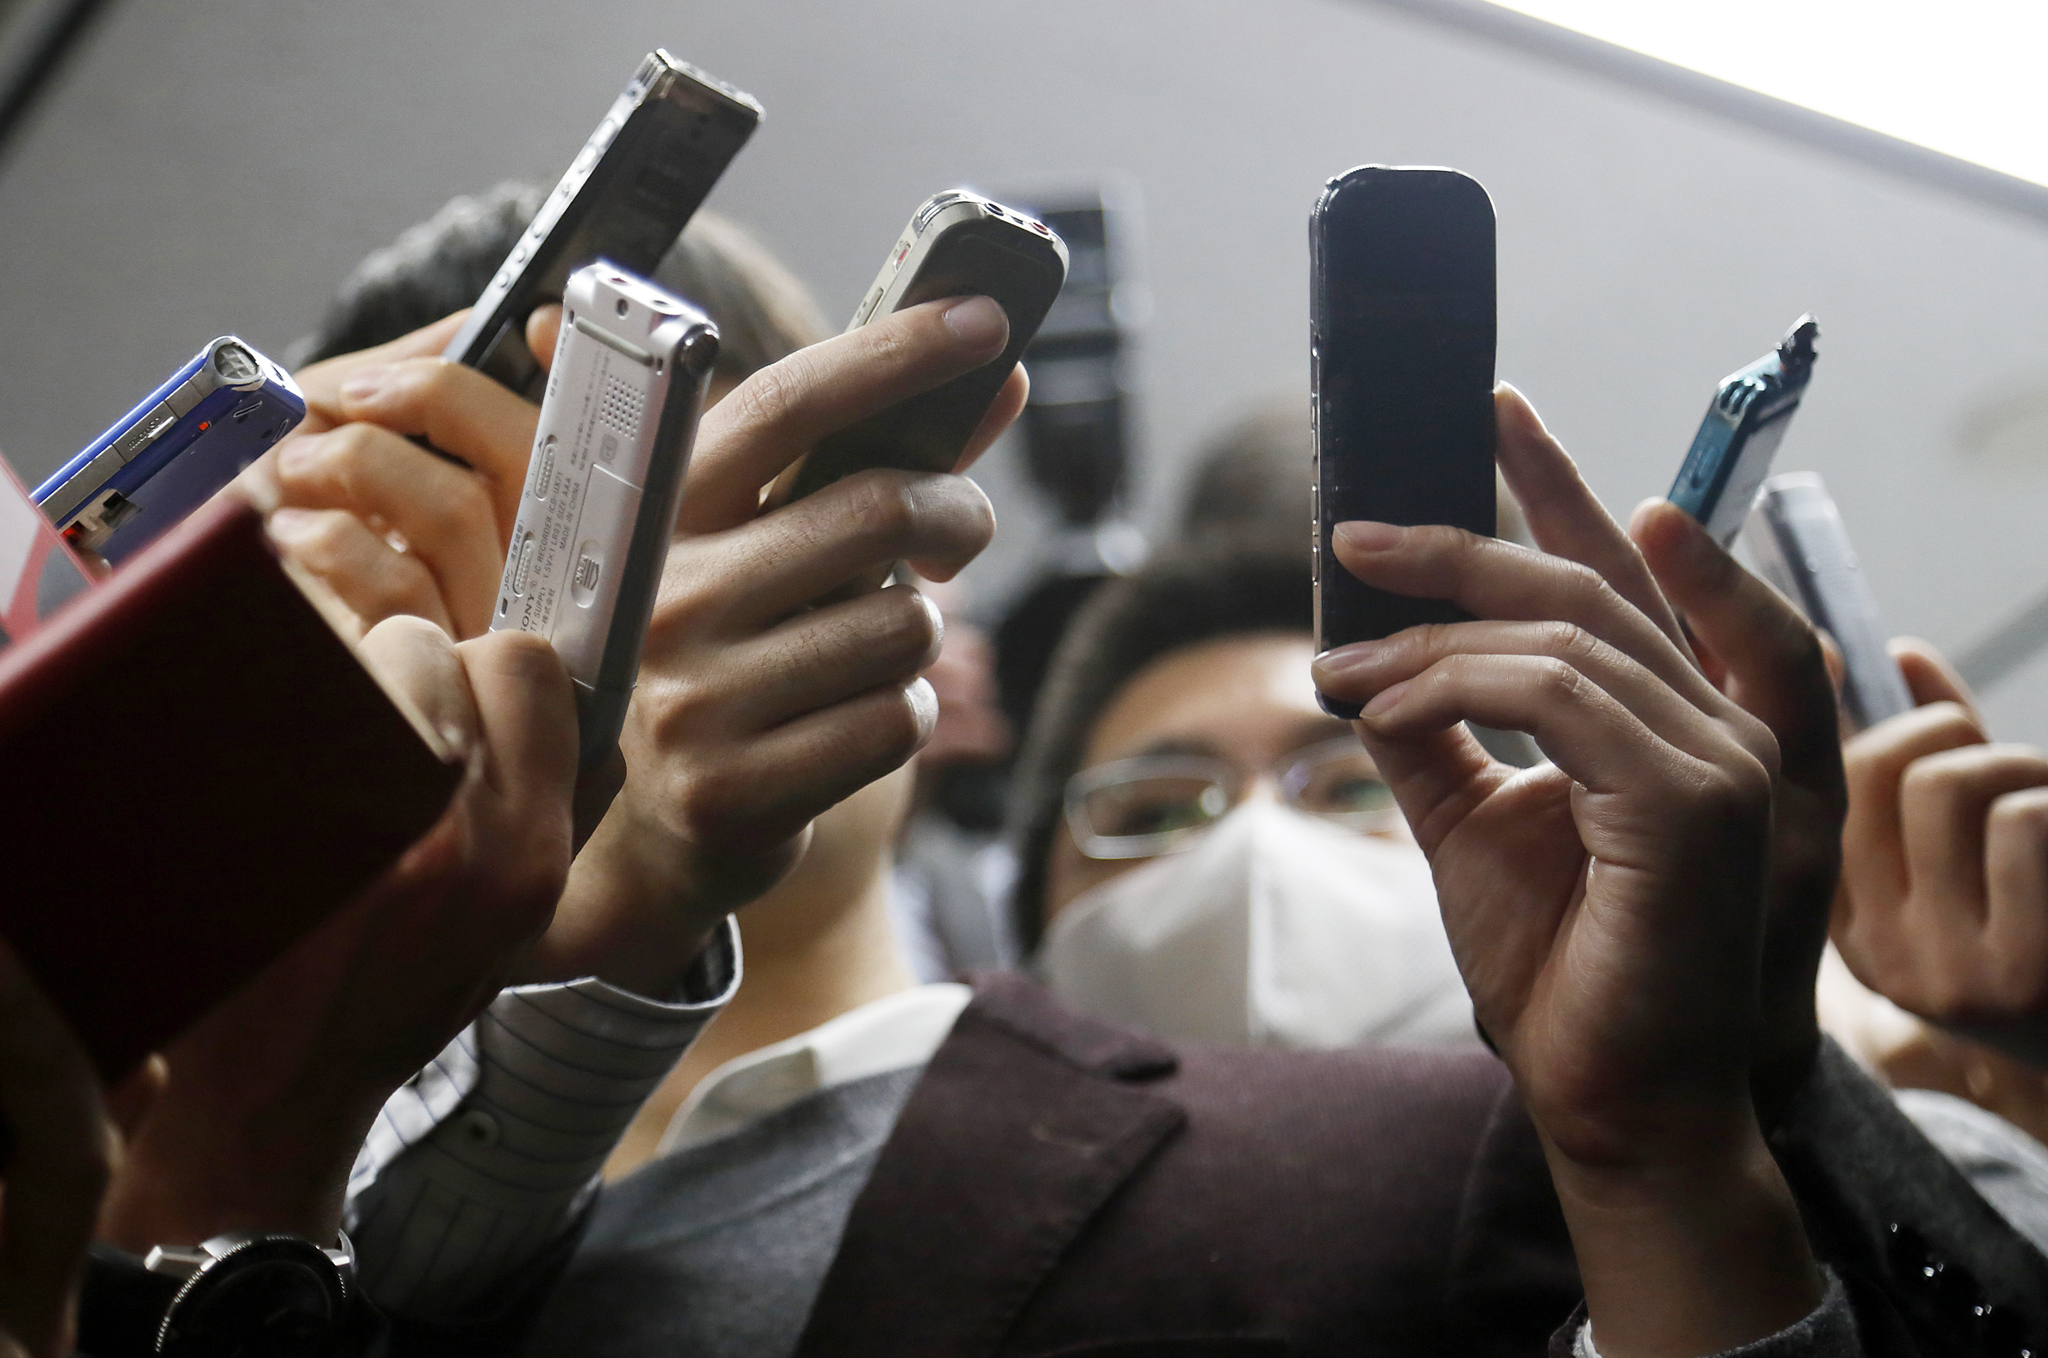 Sharp Corp. President Kozo Takahashi Attends Third-Quarter Earnings News Conference...Reporters hold recorders as Kozo Takahashi, president of Sharp Corp., not pictured, leaves a news conference in Tokyo, Japan, on Thursday, Feb. 4, 2016. Sharp reported its fifth straight loss as the embattled maker of Aquos flat-screen televisions decides between two competing bailout offer